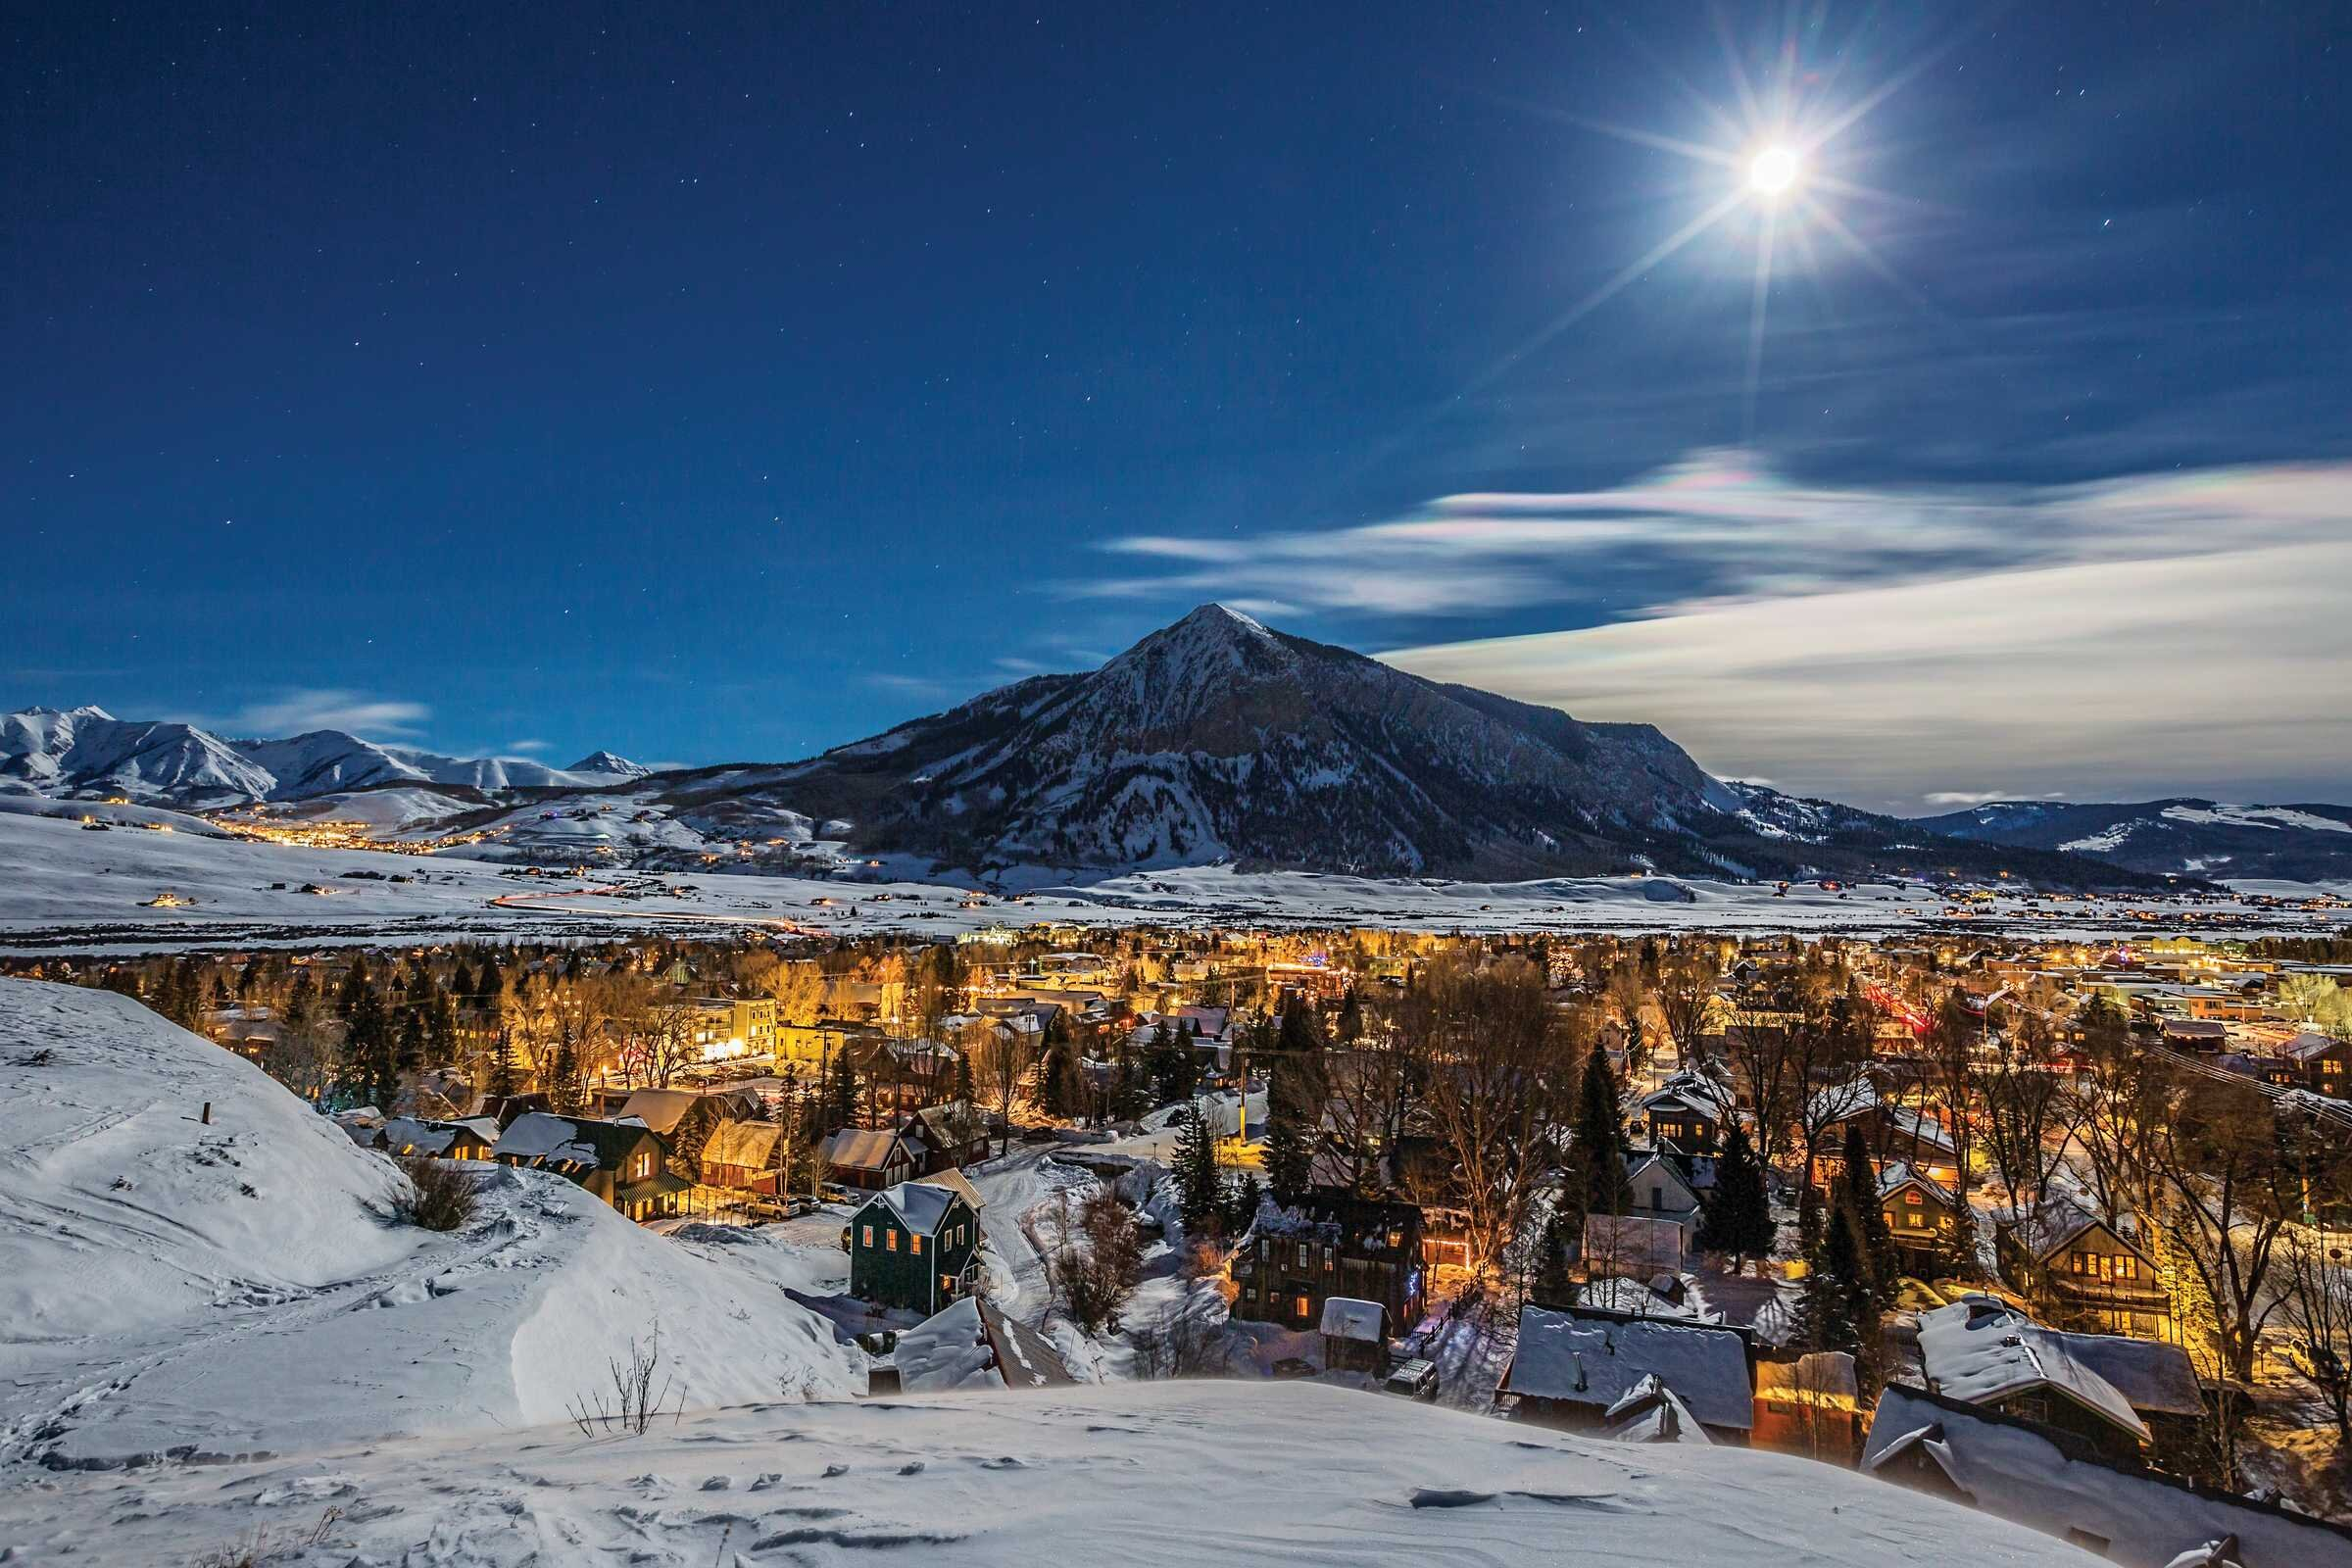 Living in high demand areas in the Rocky Mountains is not affordable… - The median home price in Crested Butte, CO is $1,595,00Eagle, Colorado's median is $1,142,500Steamboat, Colorado's median is $1,495,000Coldwell Banker Distinctive Properties